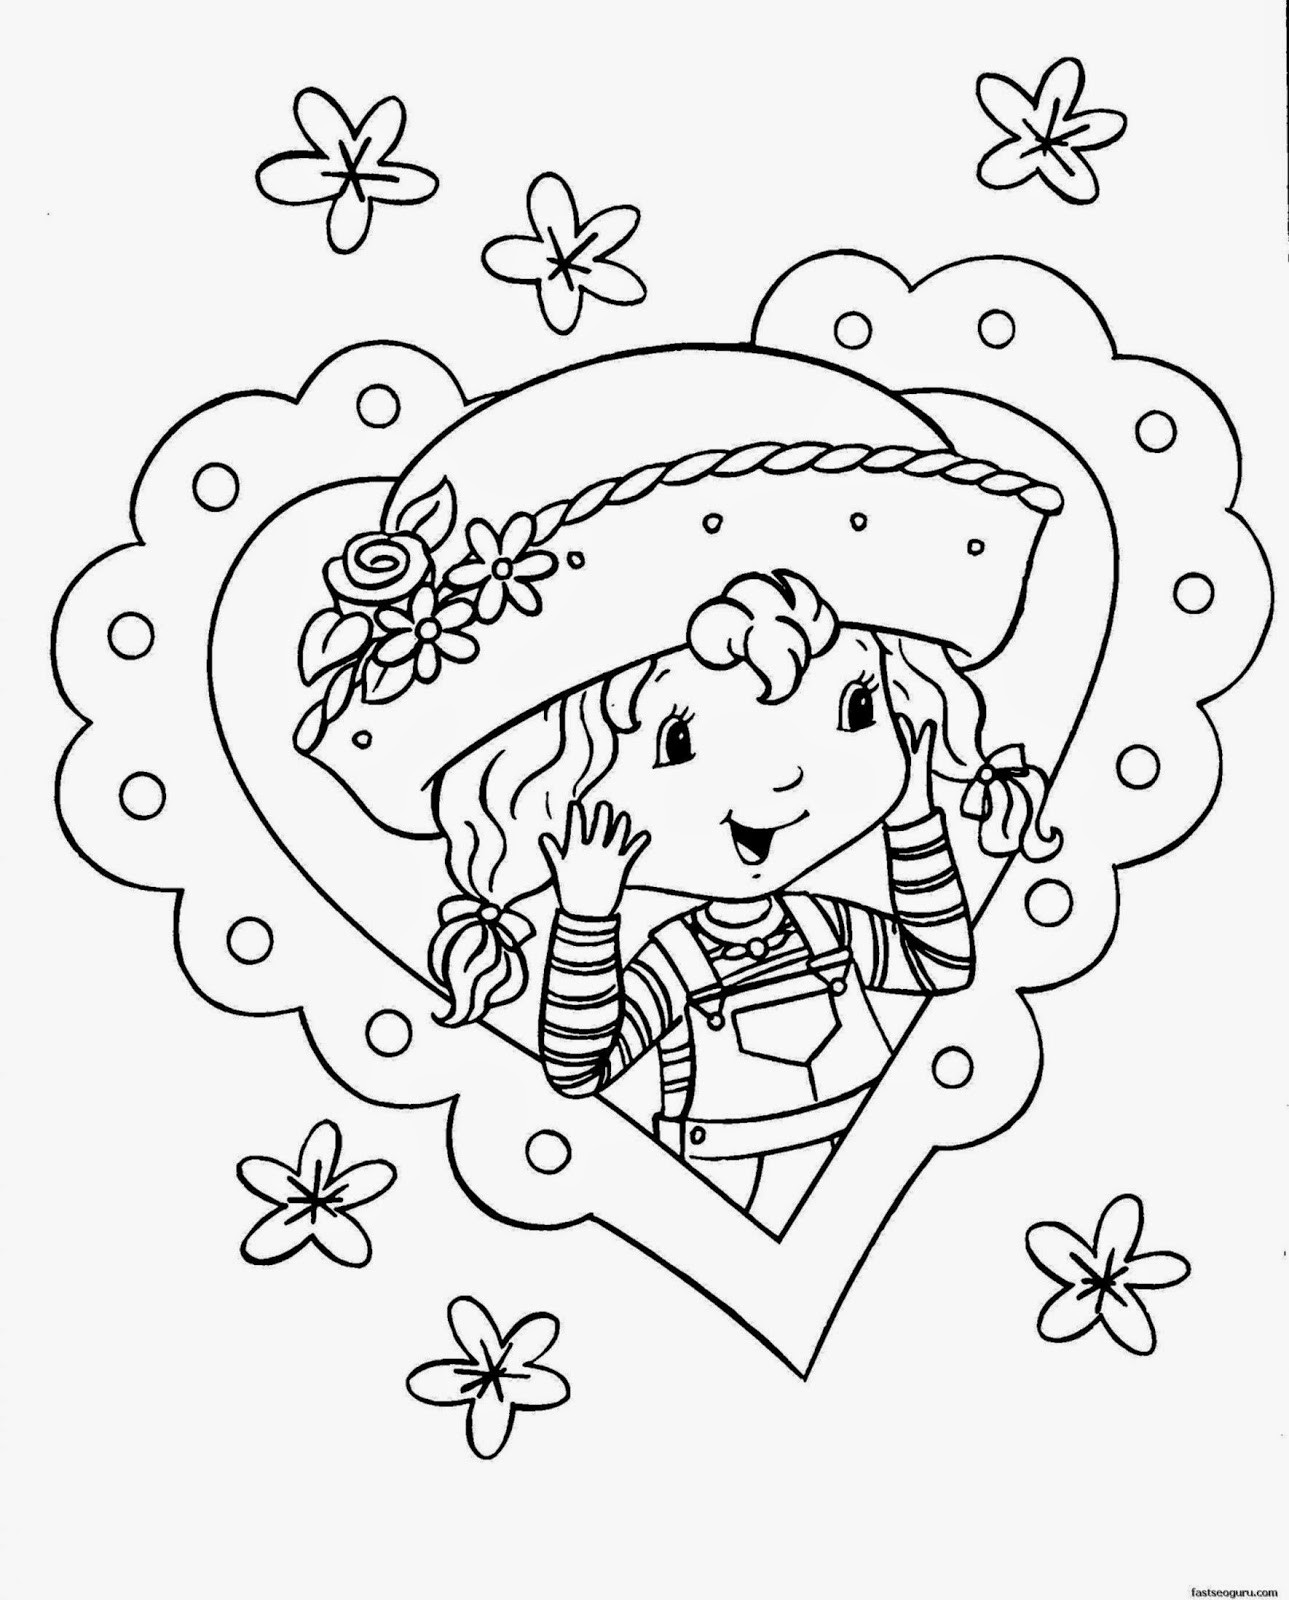 Best ideas about Free Coloring Pages For Girls To Print . Save or Pin Printable Coloring Pages For Girls Now.